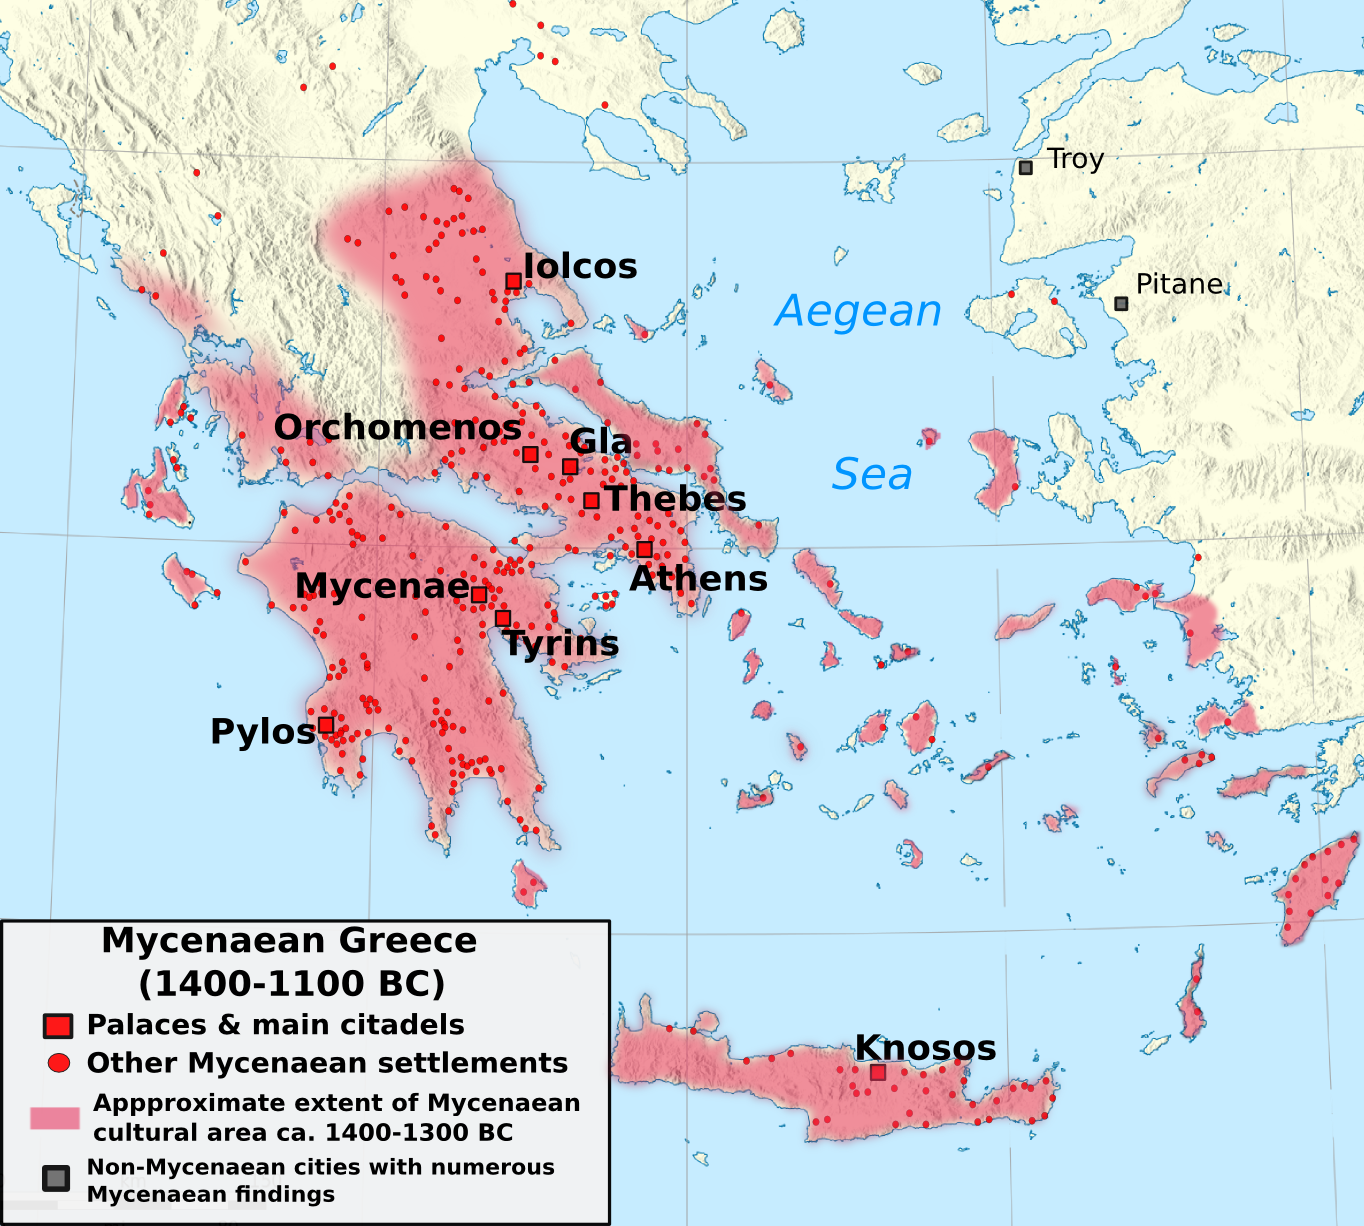 the cultures and civilizations of ancient greece The phoenicians called articles on ancient the cultures and civilizations of ancient greece egypt, ancient rome, ancient greece and other civilizations at ancient.